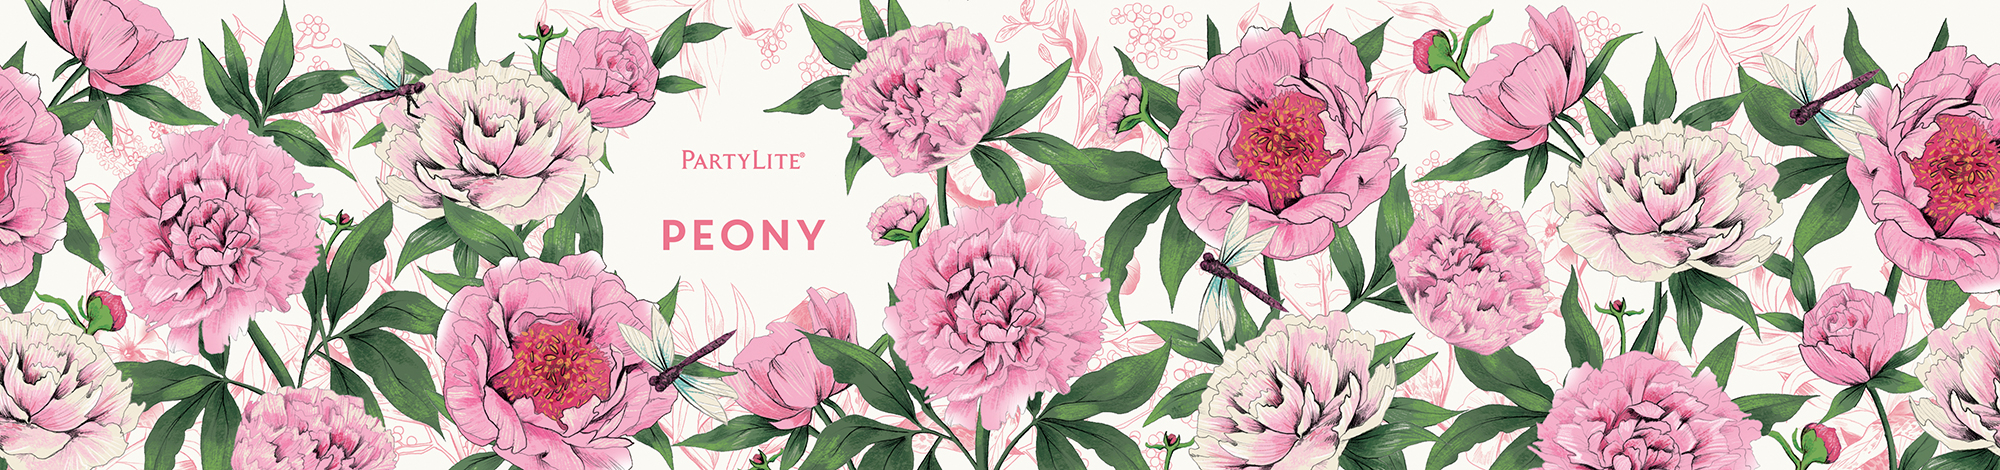 fig. 12. Peony candle wrap pattern illustration